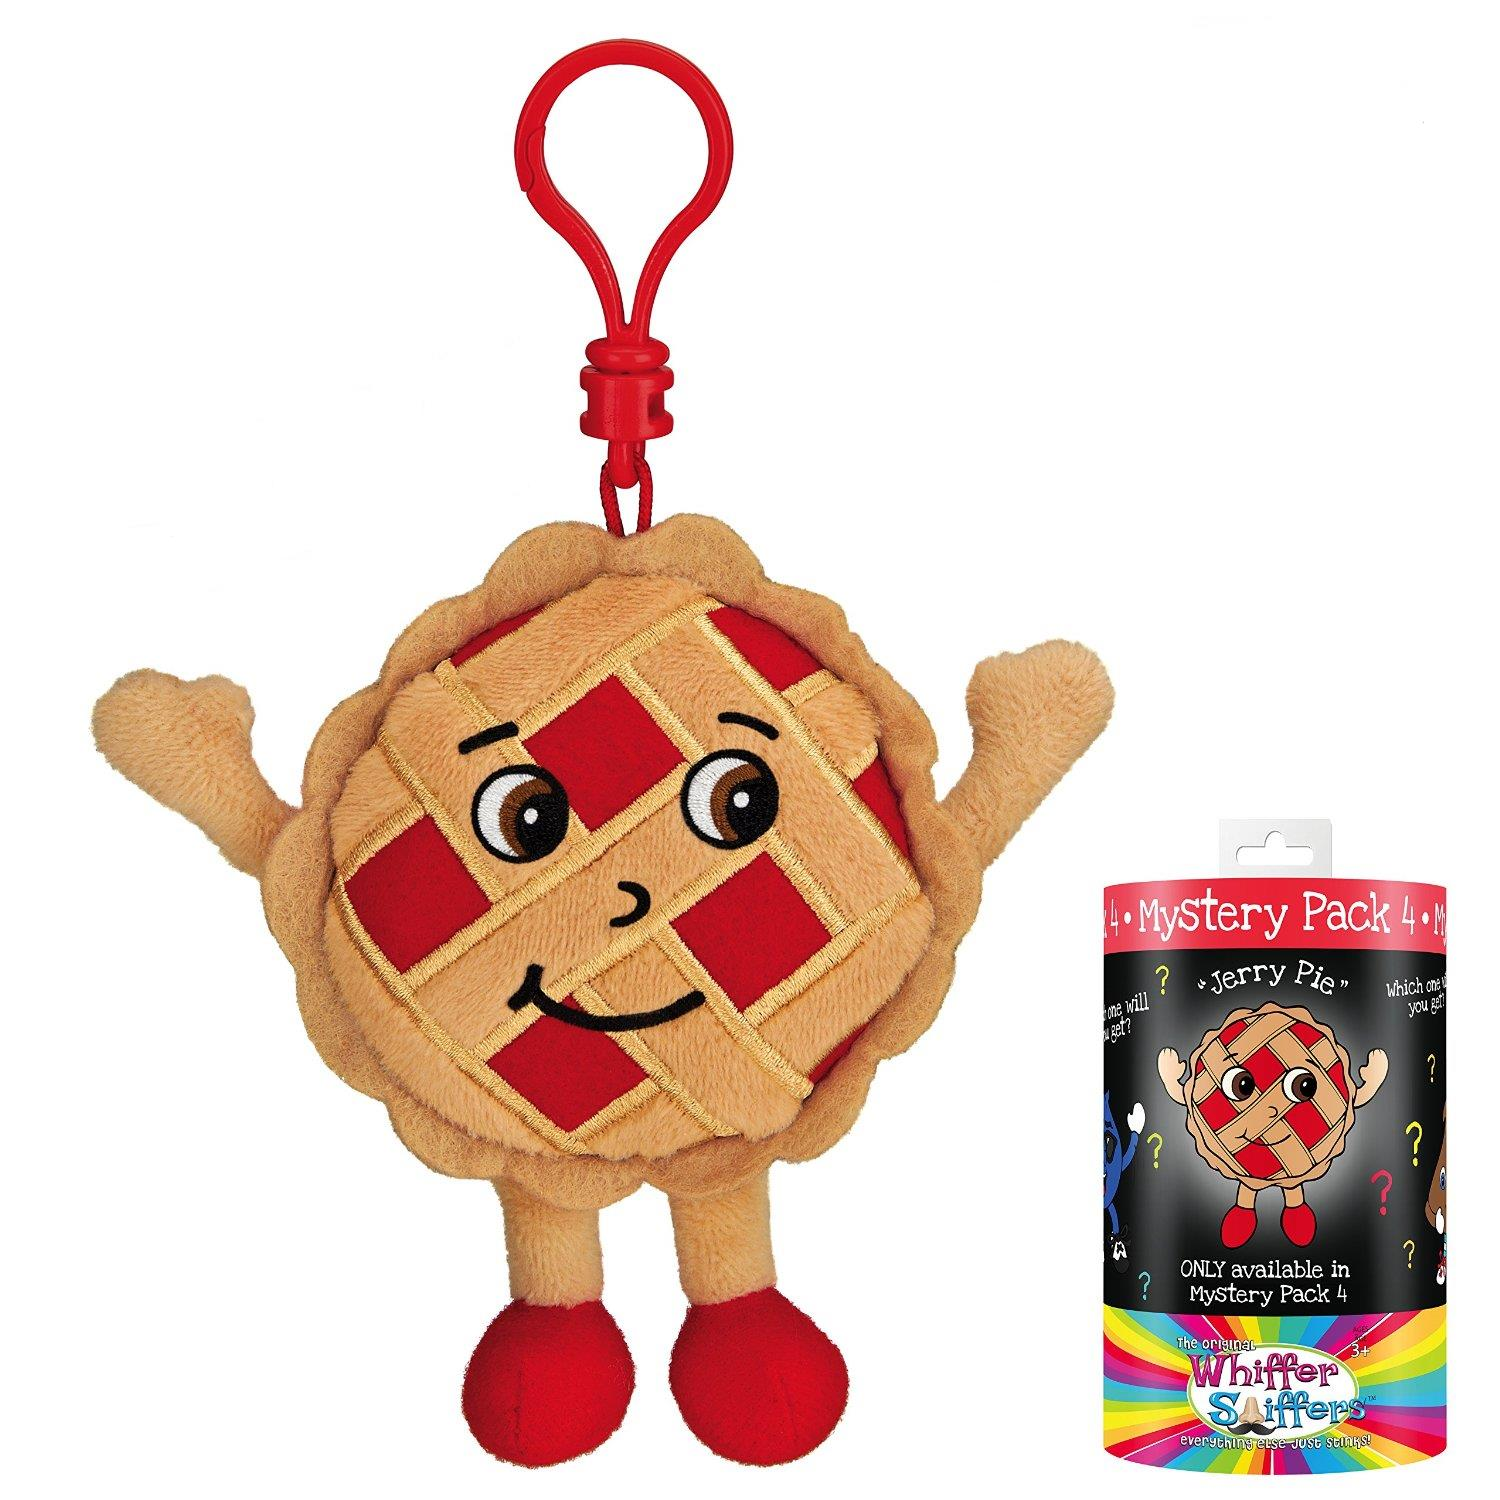 Whiffer Sniffer Mystery Pack 4 Backpack Clip